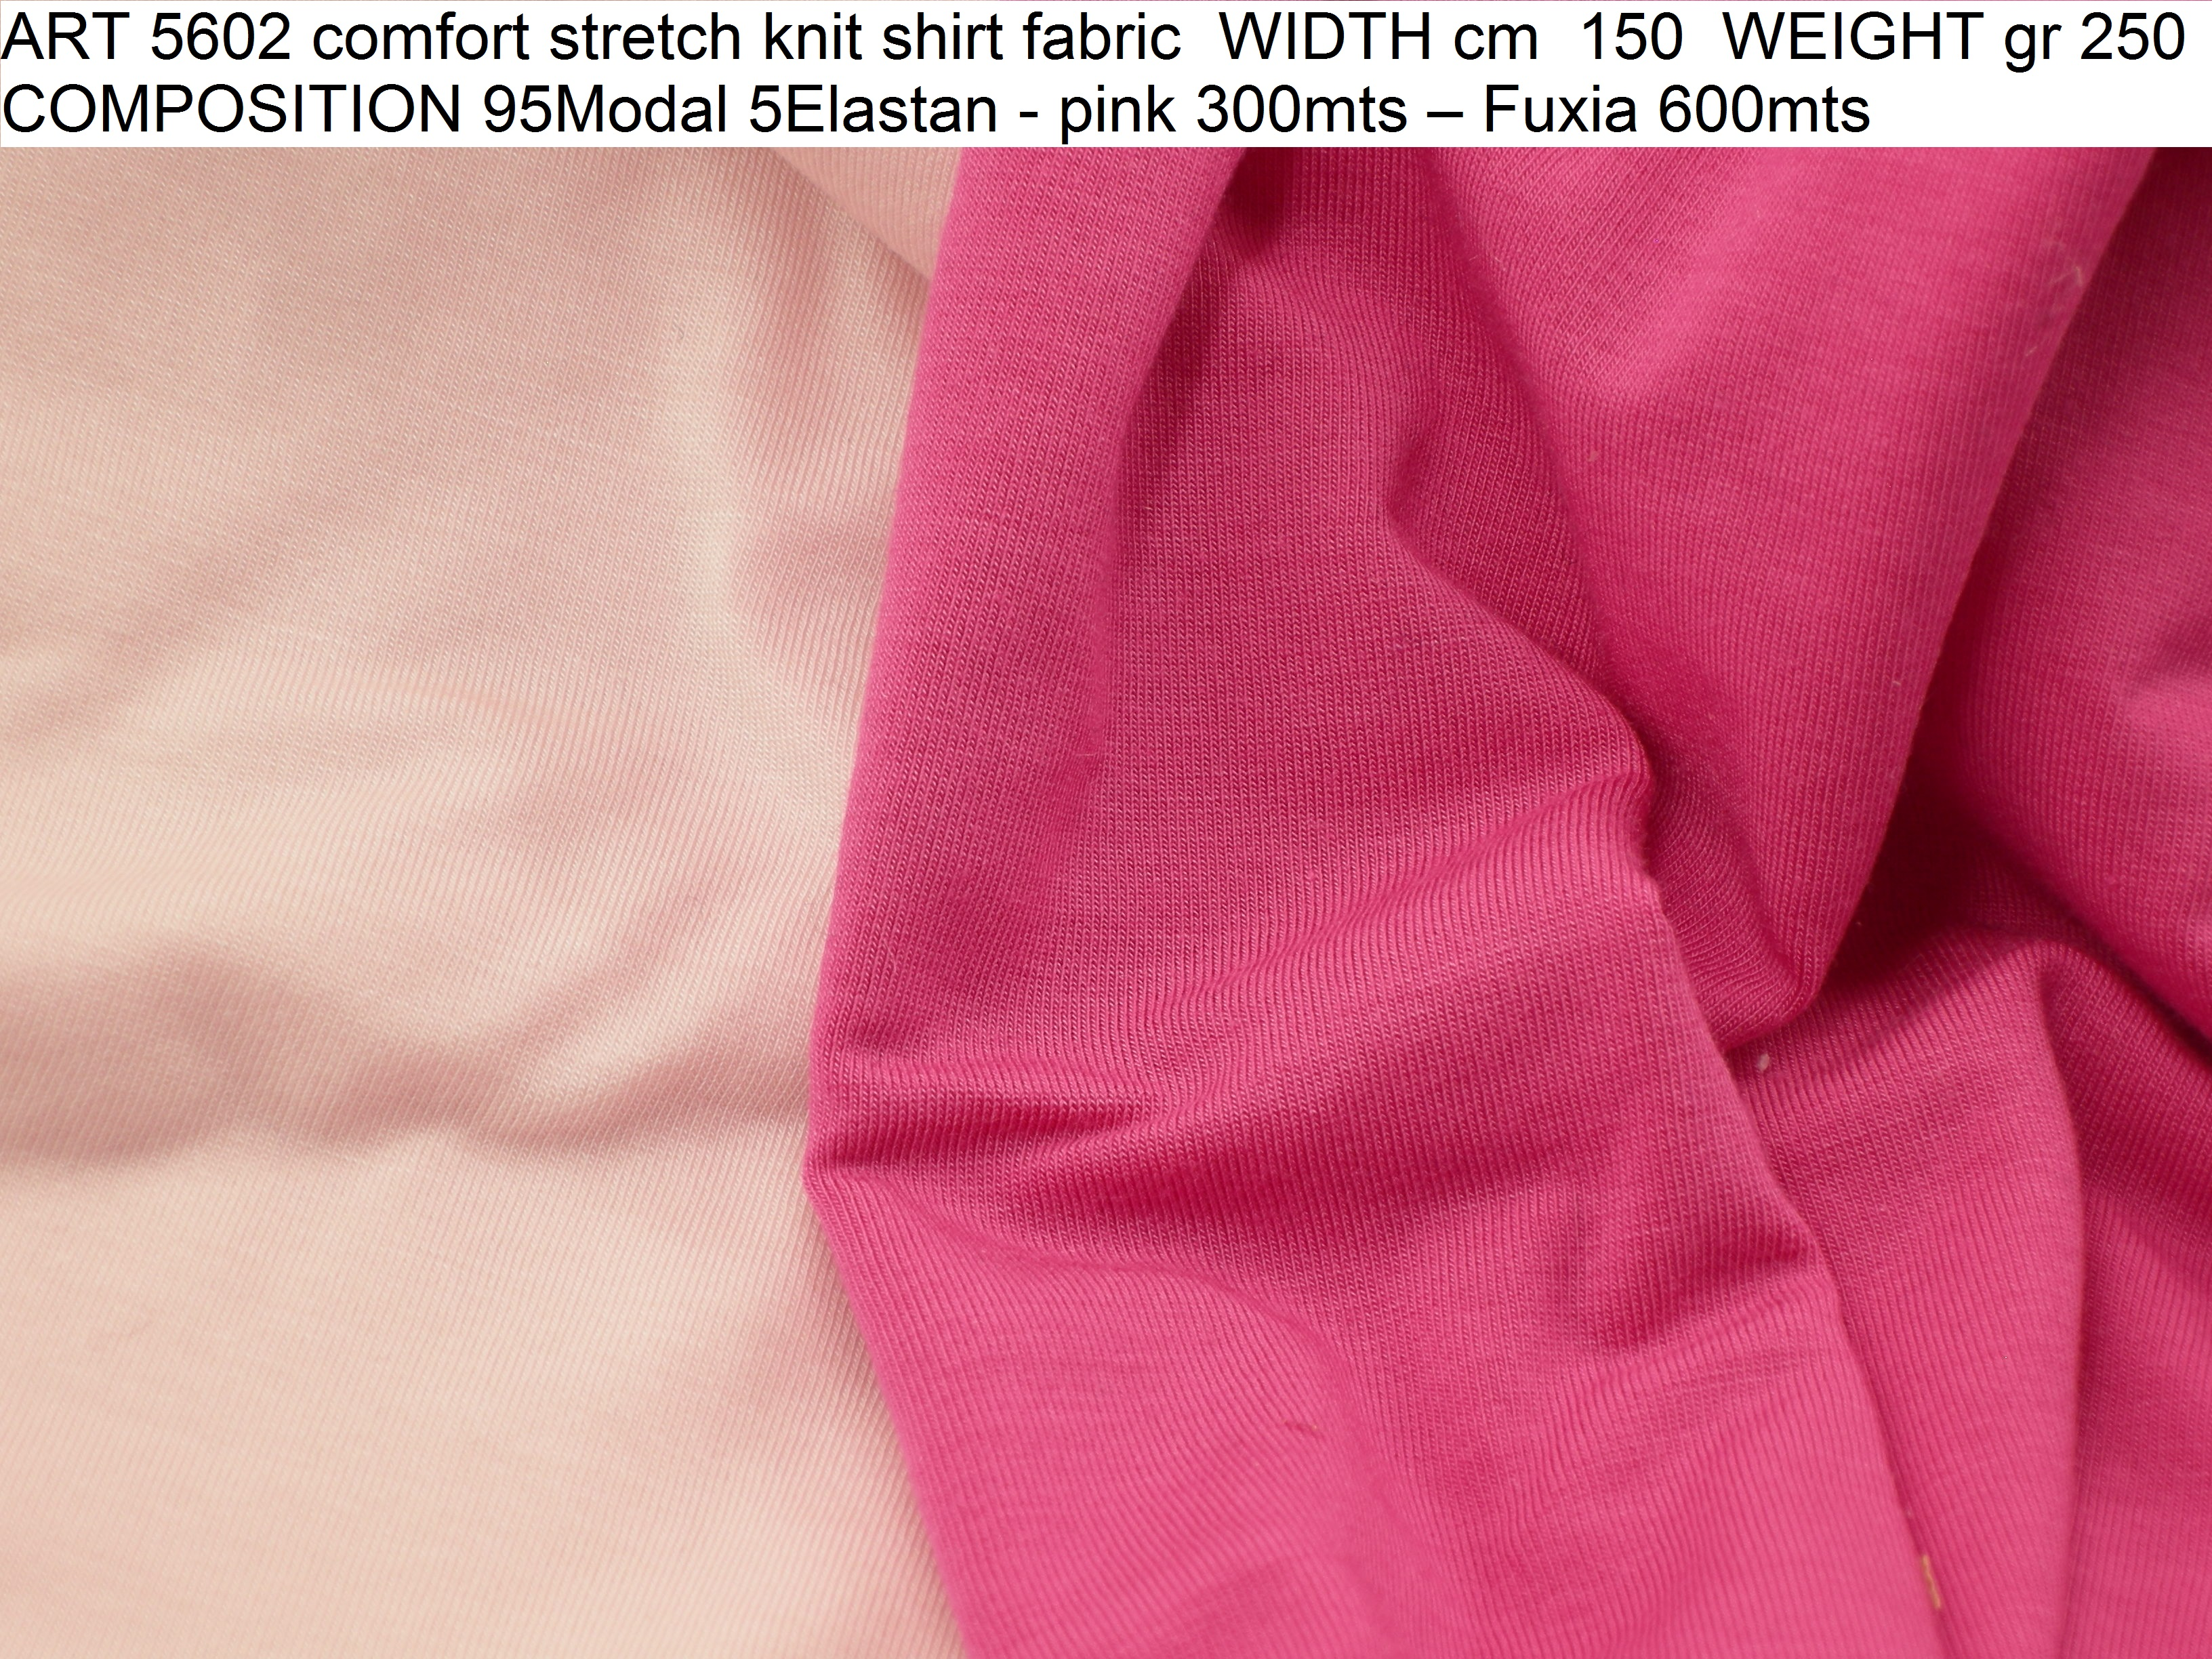 ART 5602 comfort stretch knit shirt fabric WIDTH cm 150 WEIGHT gr 250 COMPOSITION 95Modal 5Elastan - pink 300mts – Fuxia 600mts